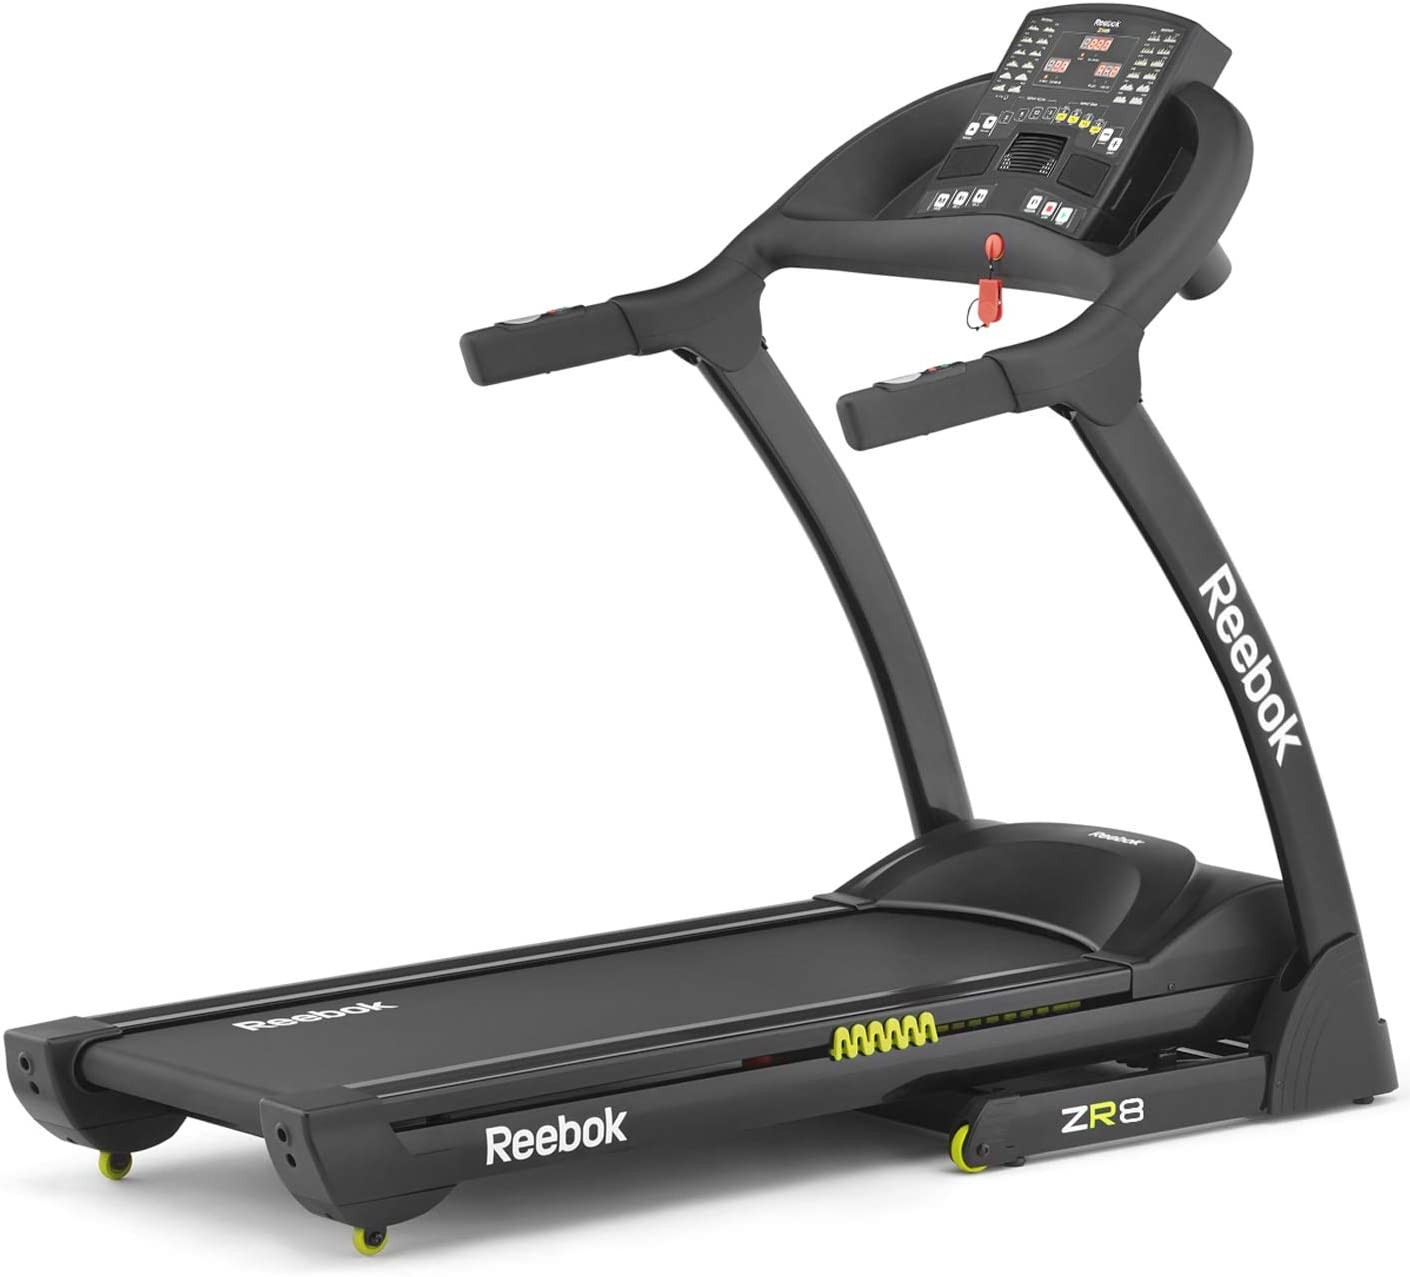 Treadmill ZR8